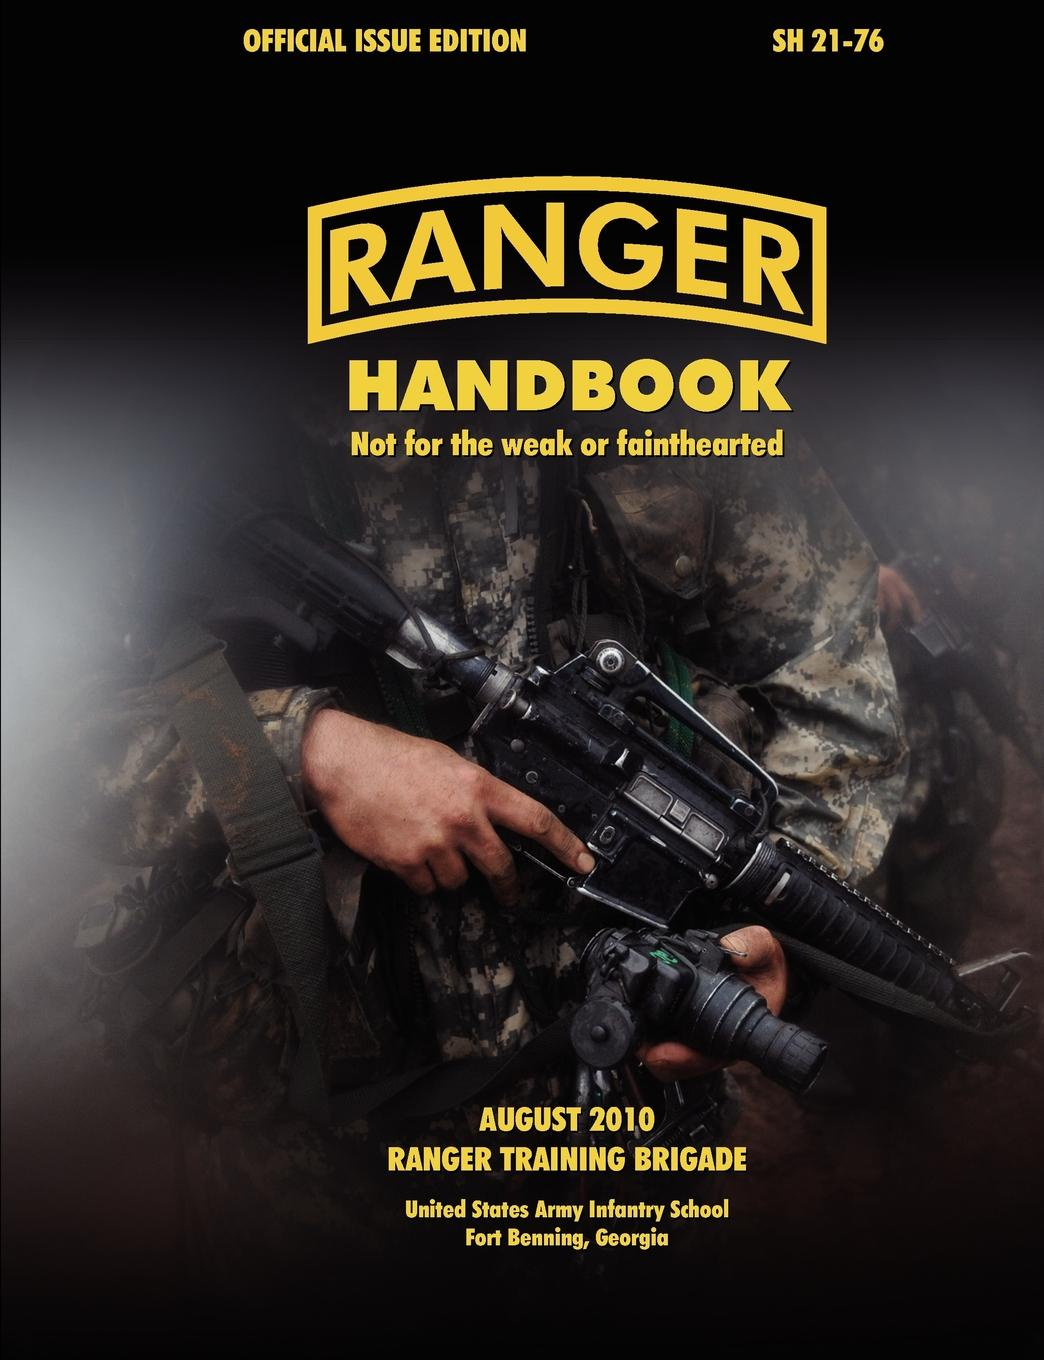 Ranger Training Brigade, U. S. Army Infantry School, U. S. Department of the Army Ranger Handbook (Large Format Edition). The Official U.S. Army Ranger Handbook Sh21-76, Revised August 2010 oumily military army survival parachute rope red 30m 140kg 2 pcs